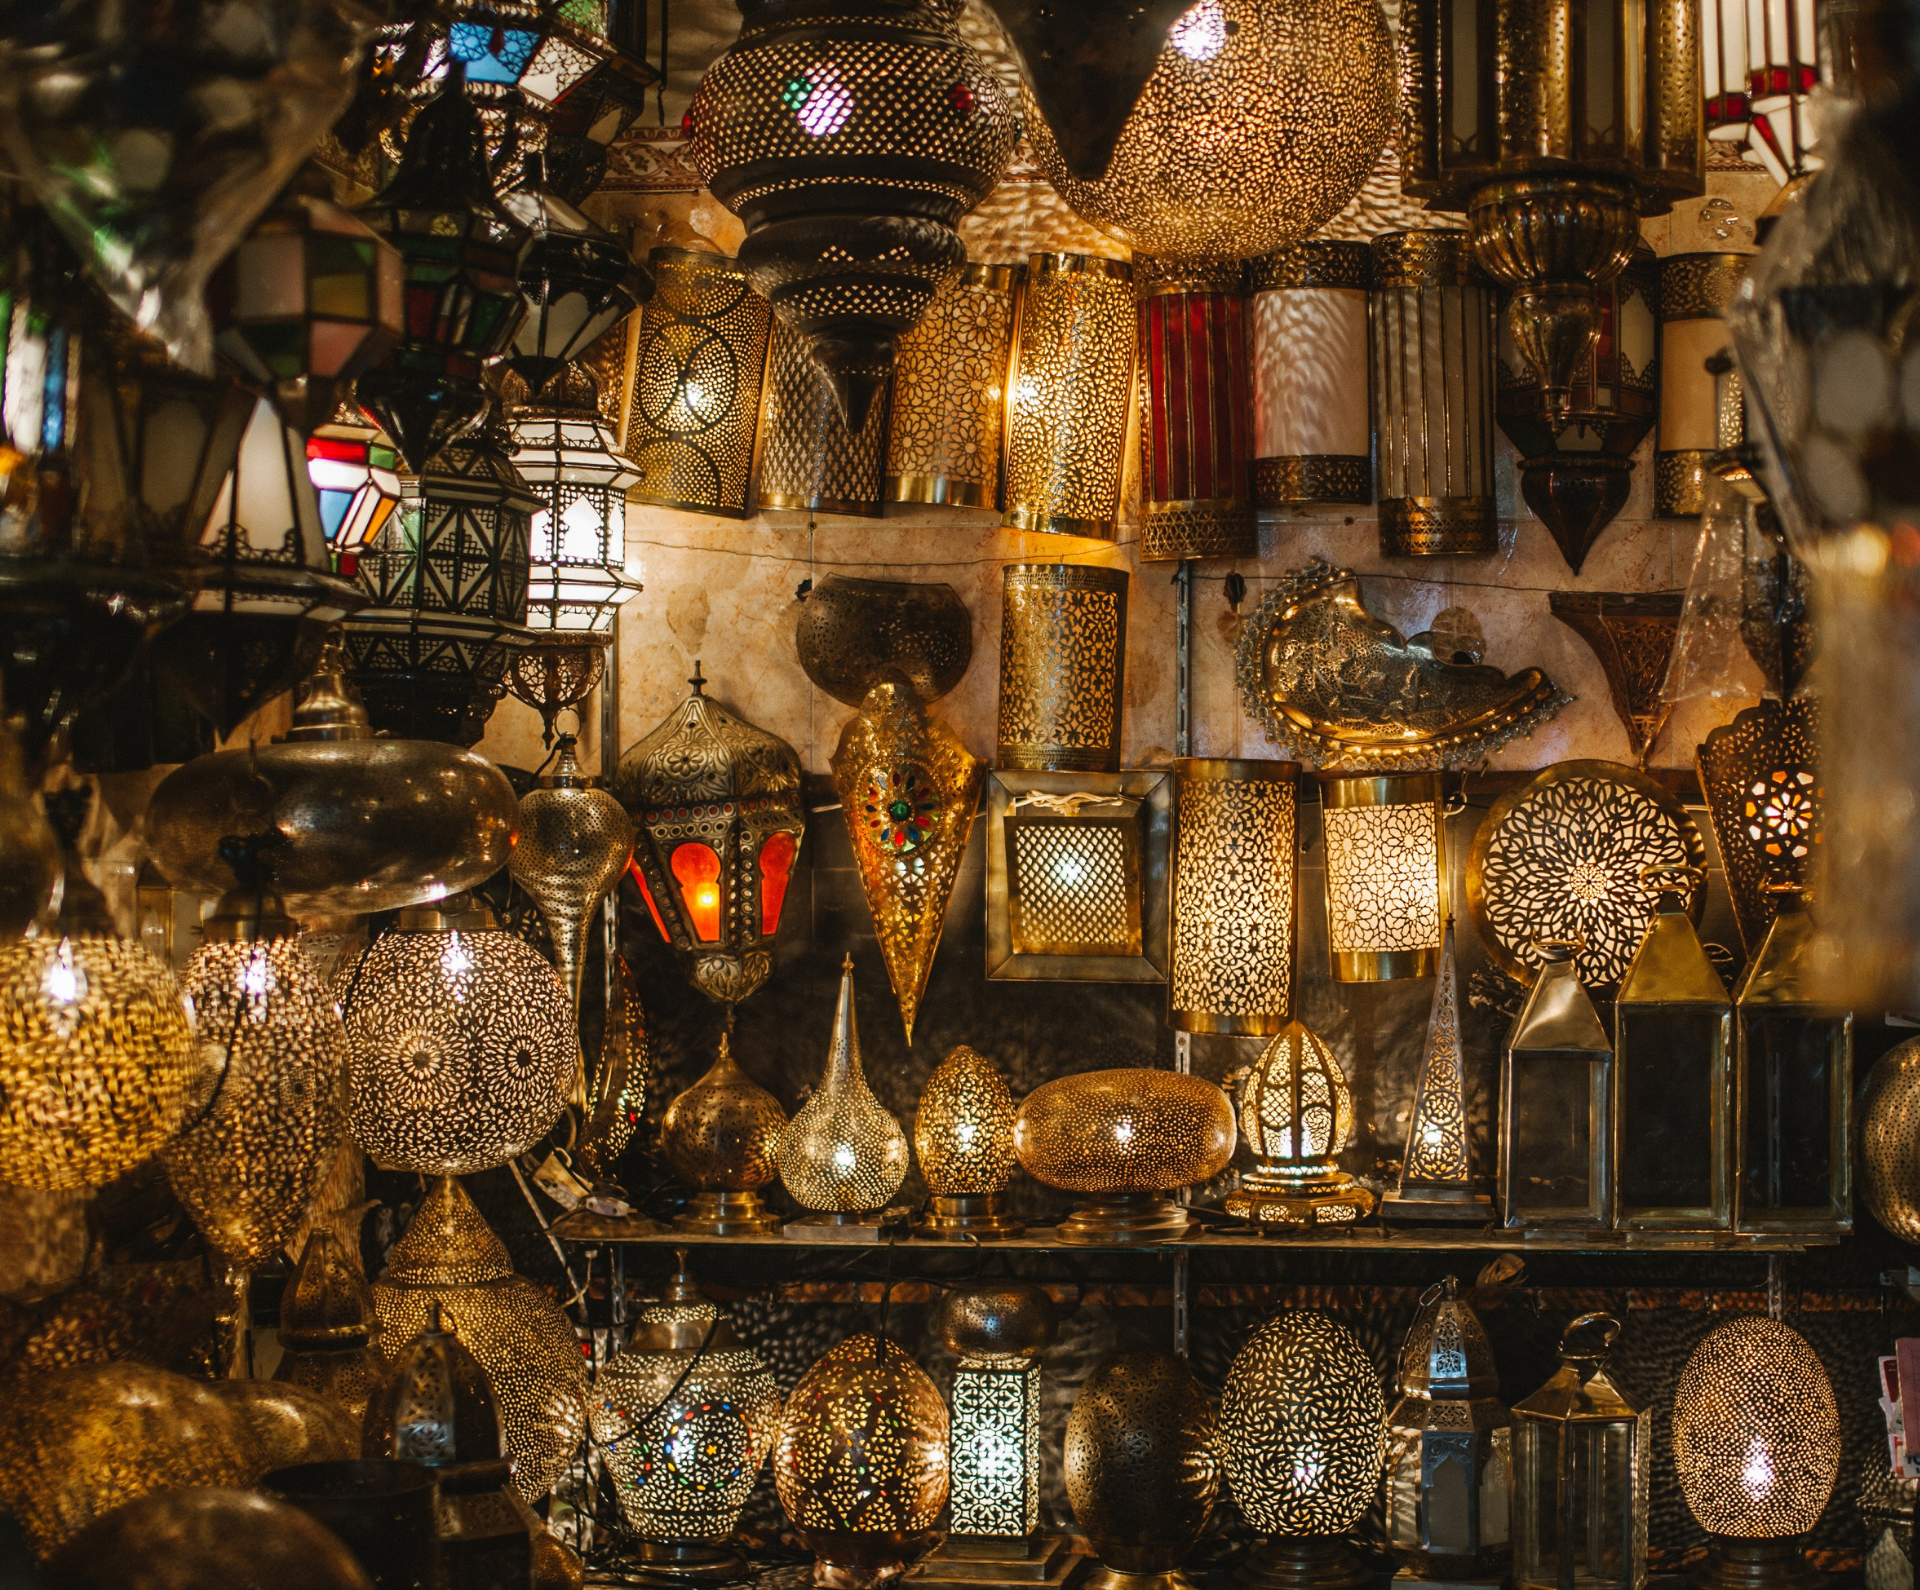 Moroccan Lighting shop display